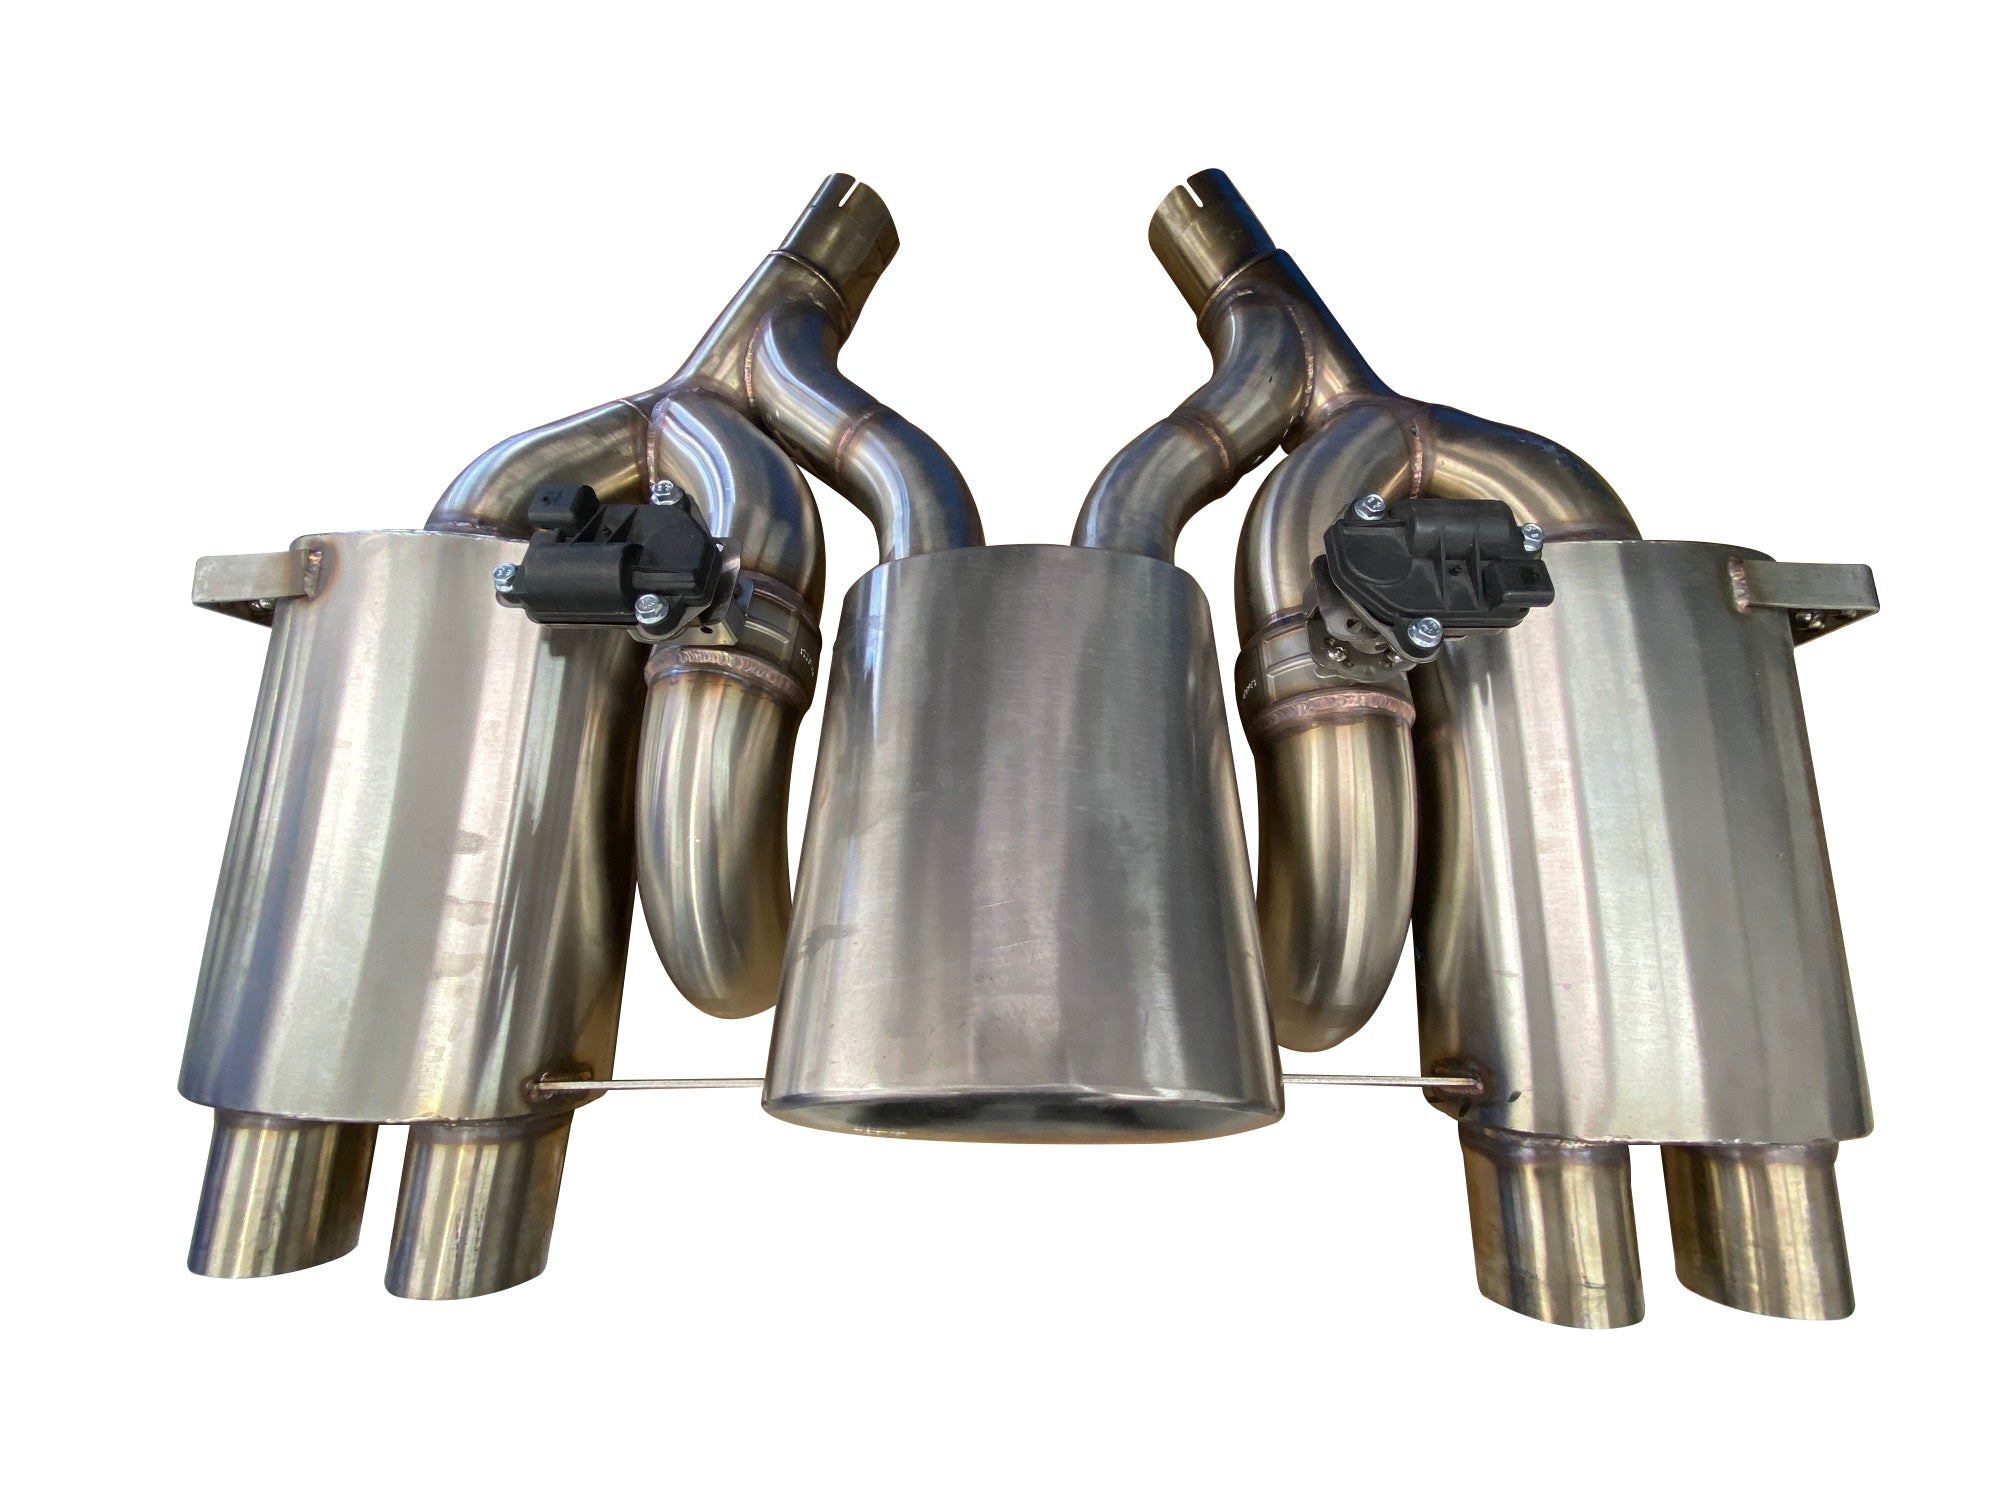 Maad Maxx - F8X BMW M3 & M4 Rear Exhaust Section - 3 Can Valved